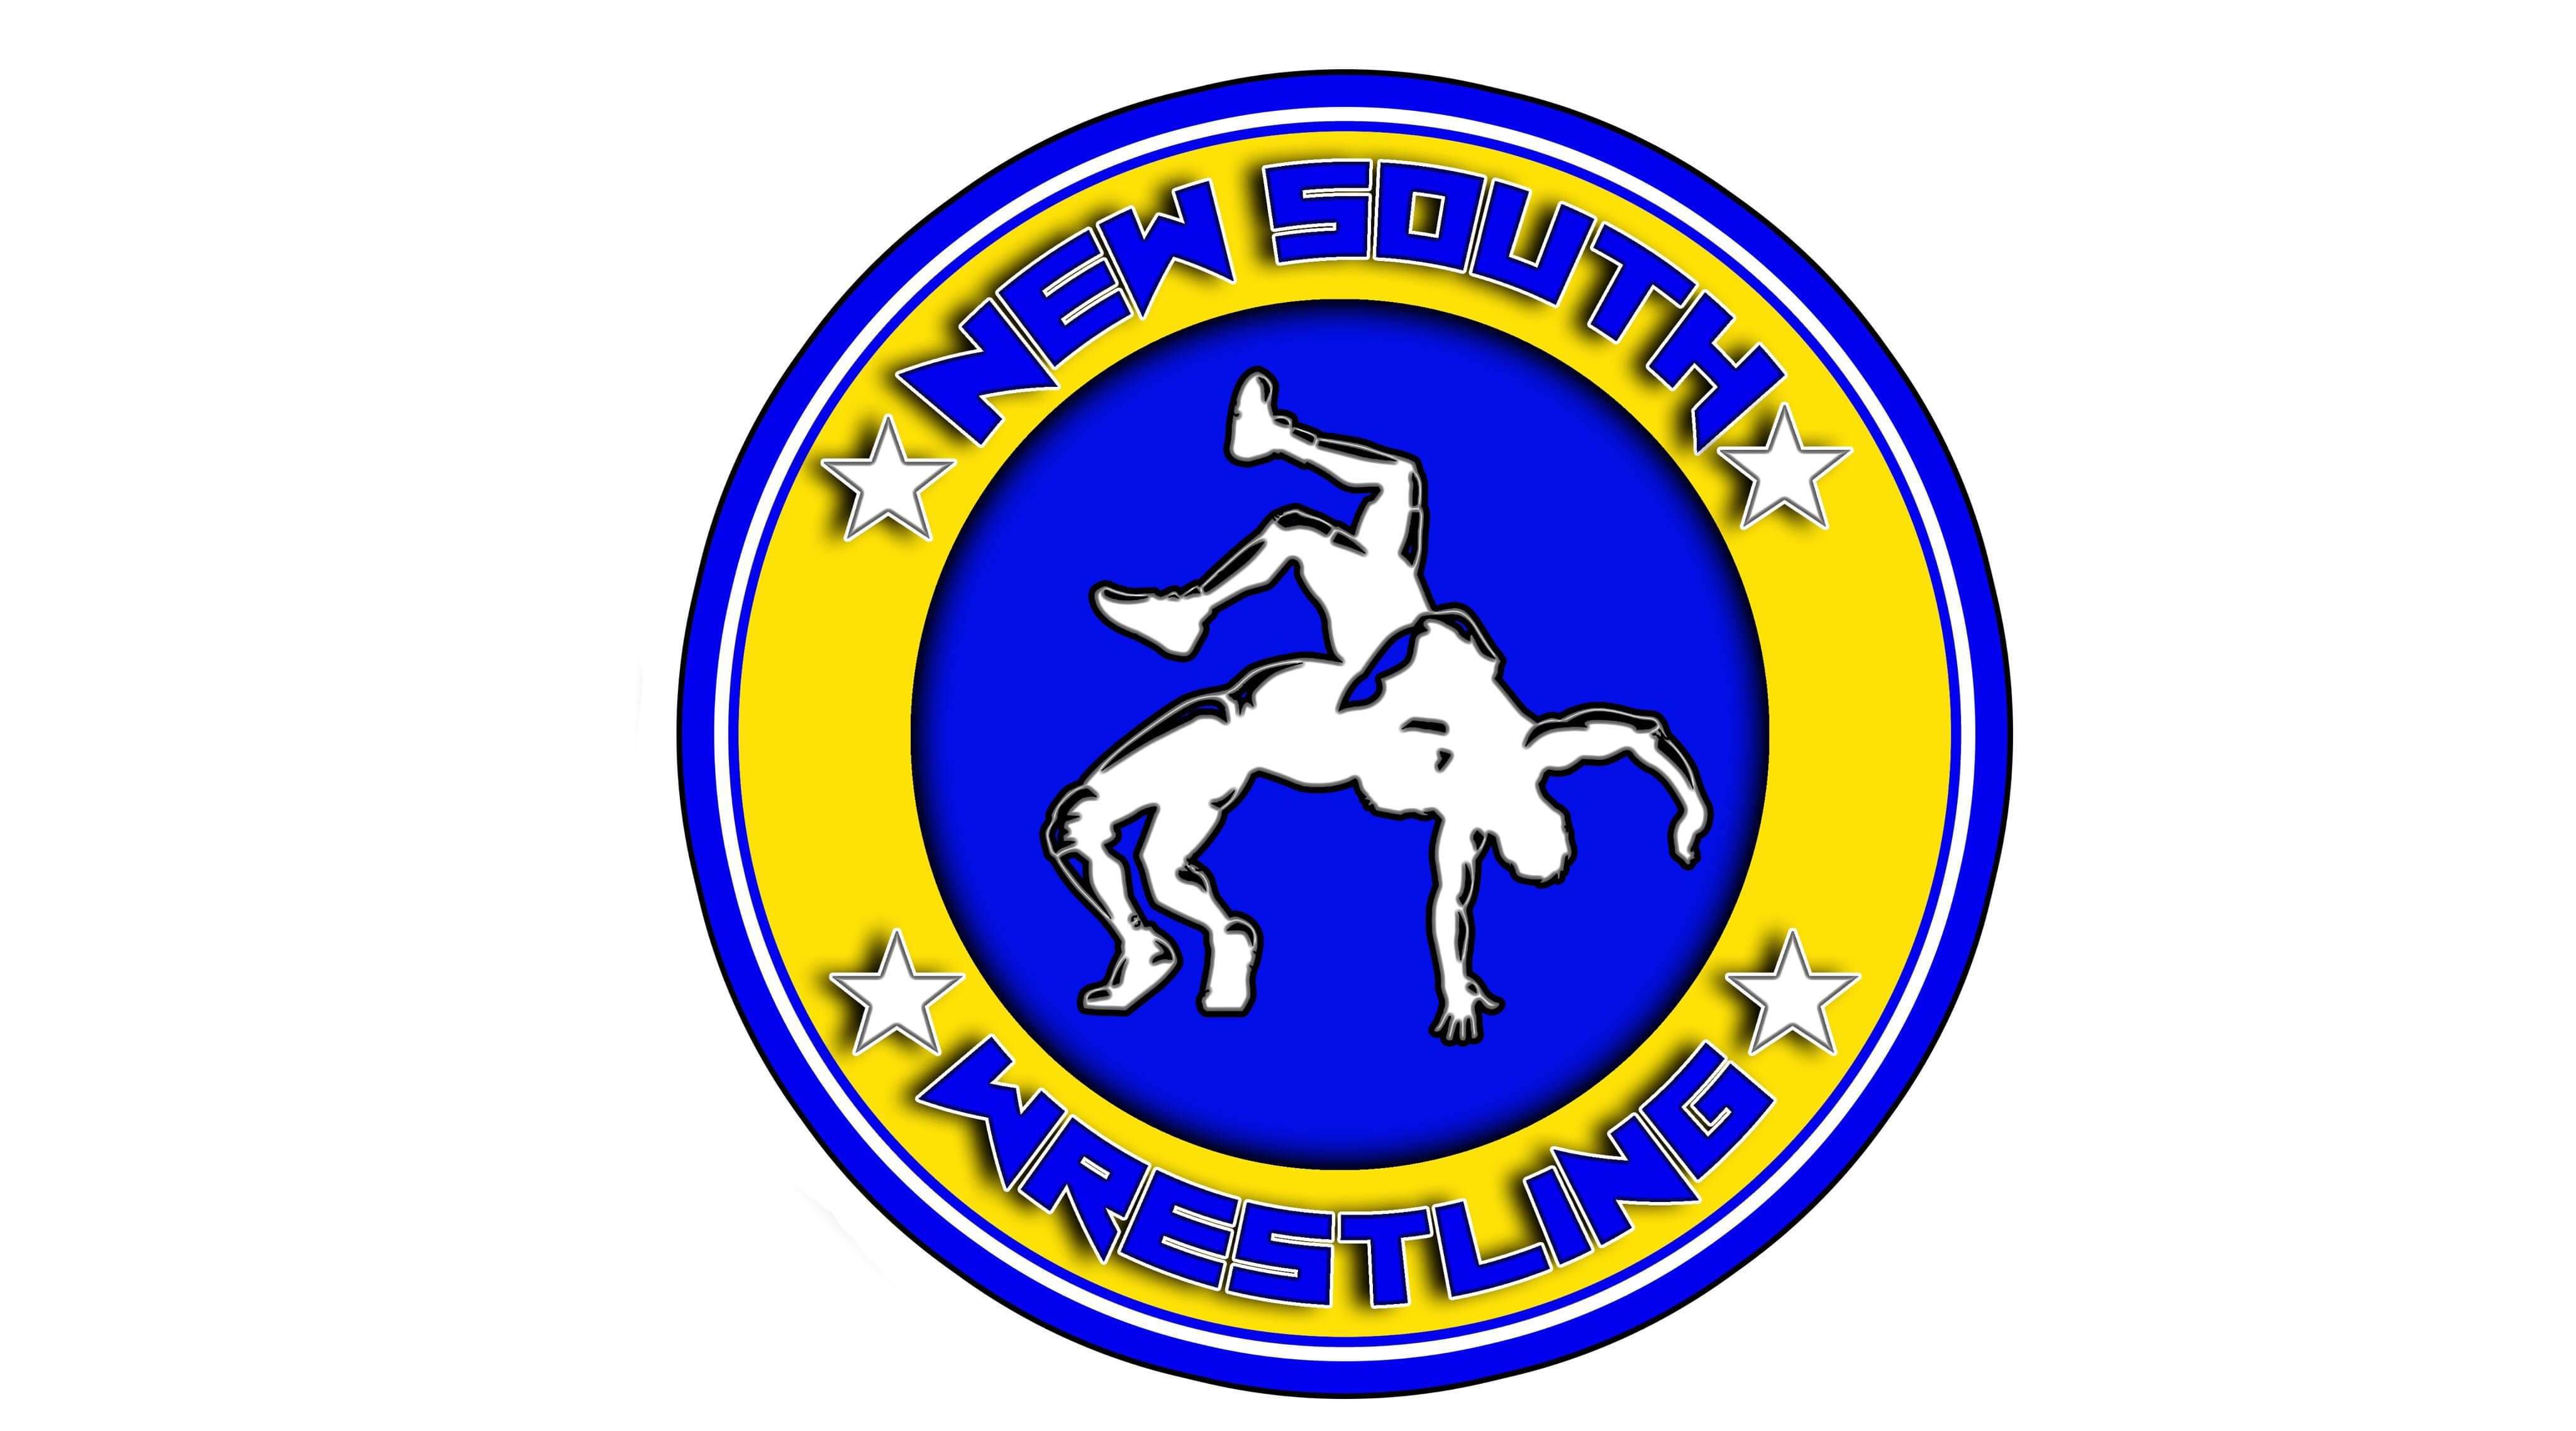 New South Wrestling